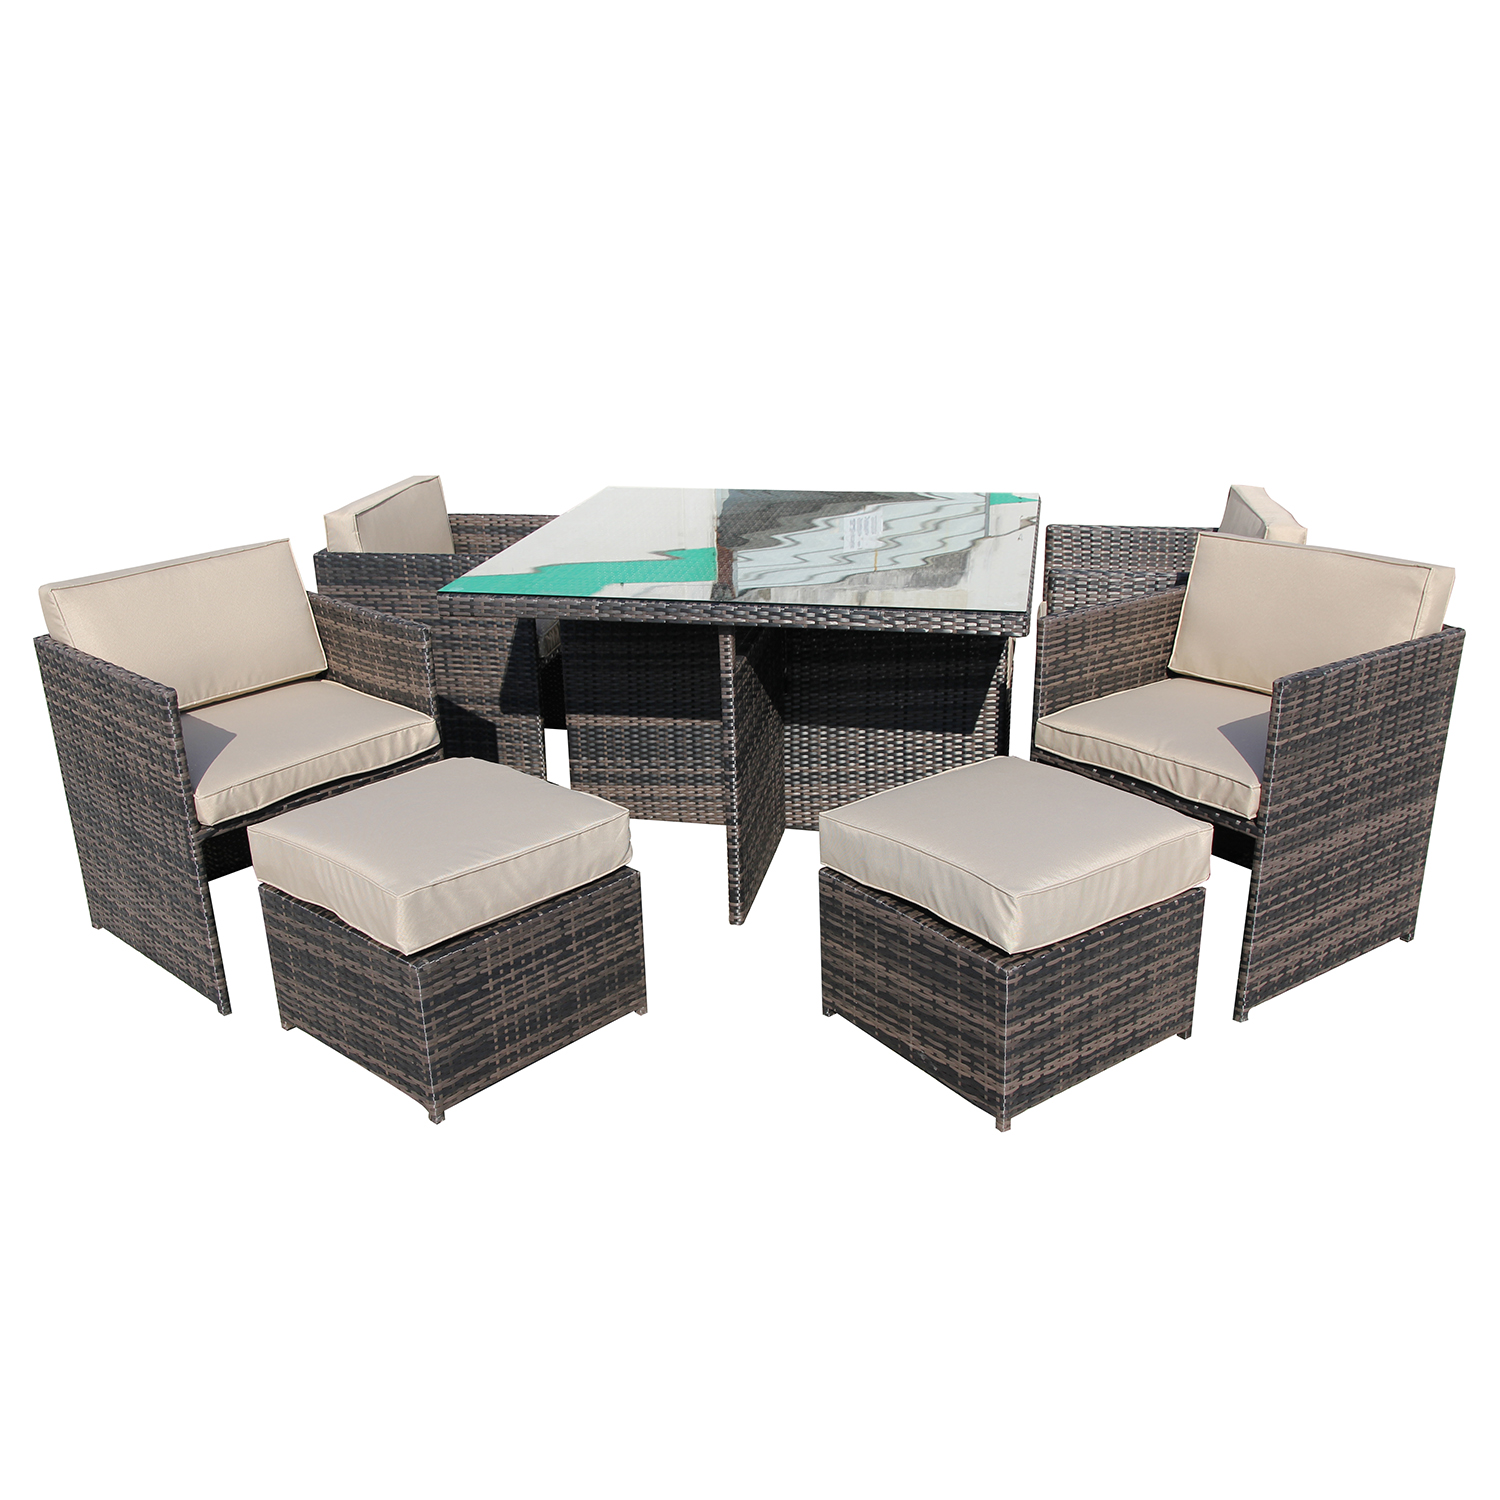 rattan indoor sofa bed outdoor glider cushions couch weave pool lounge brown canggu